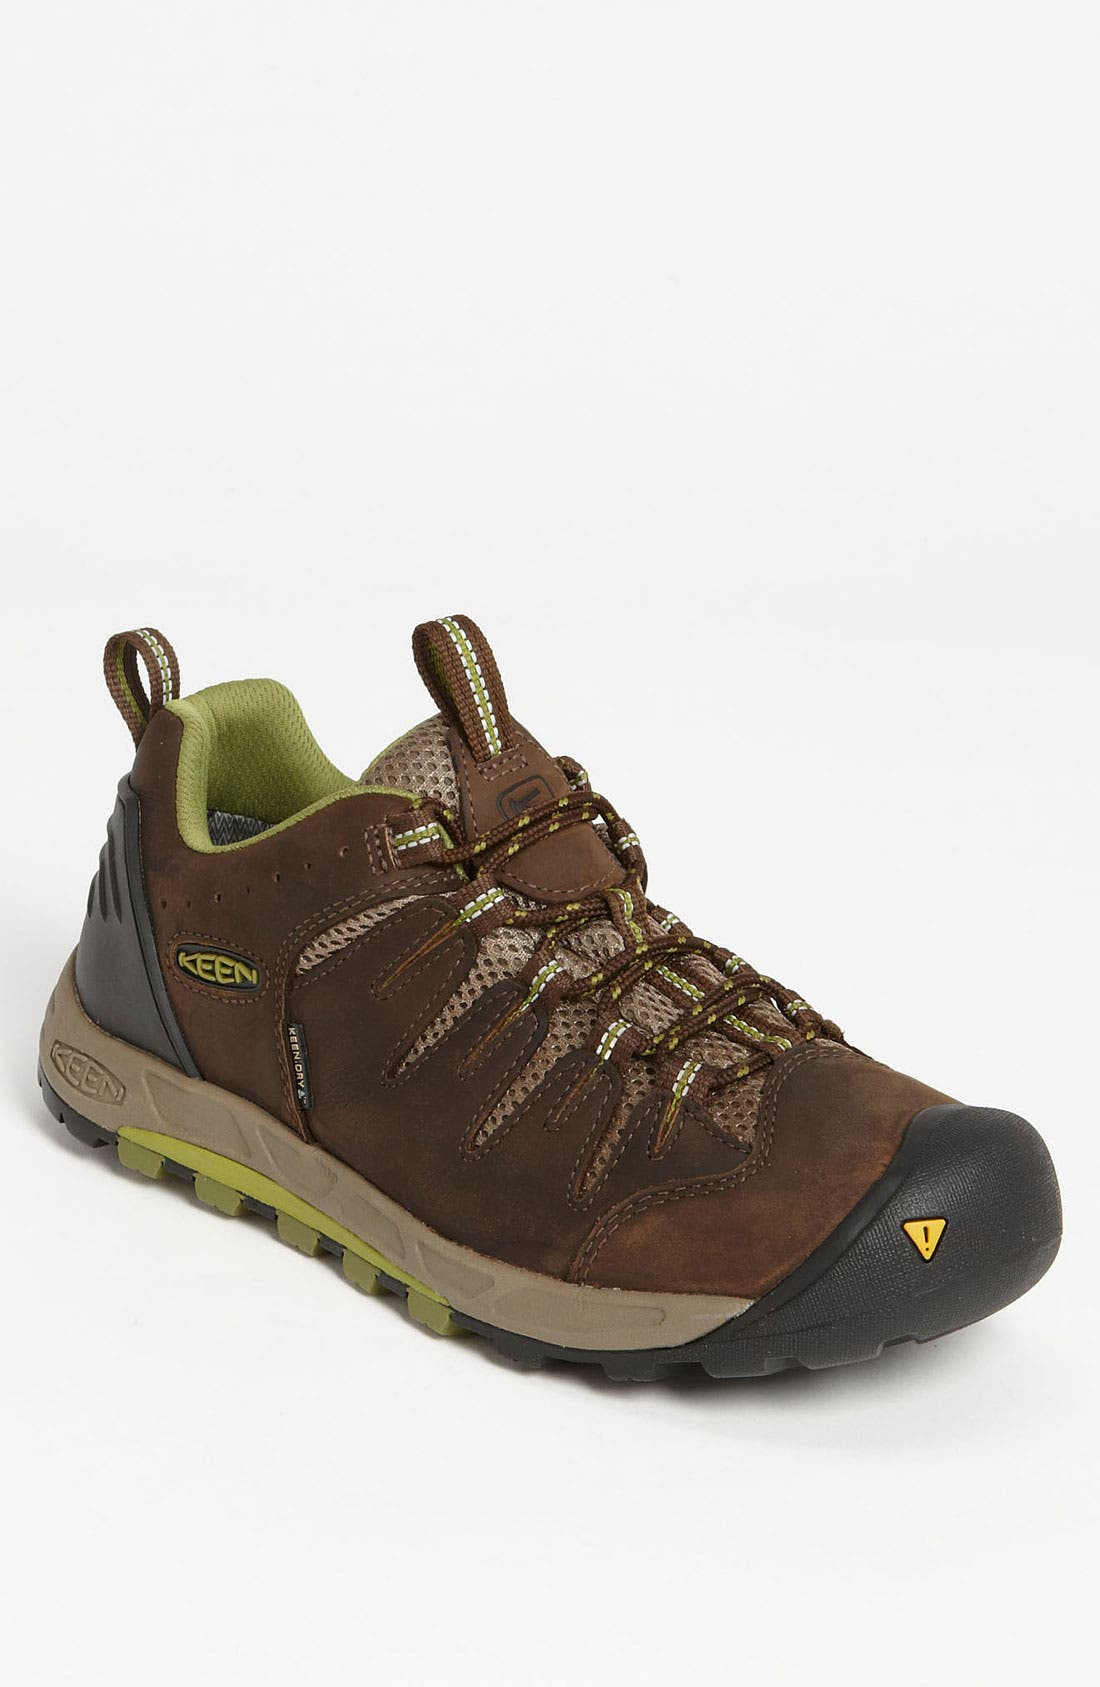 Alternate Image 1 Selected - Keen 'Bryce' Hiking Shoe (Men)